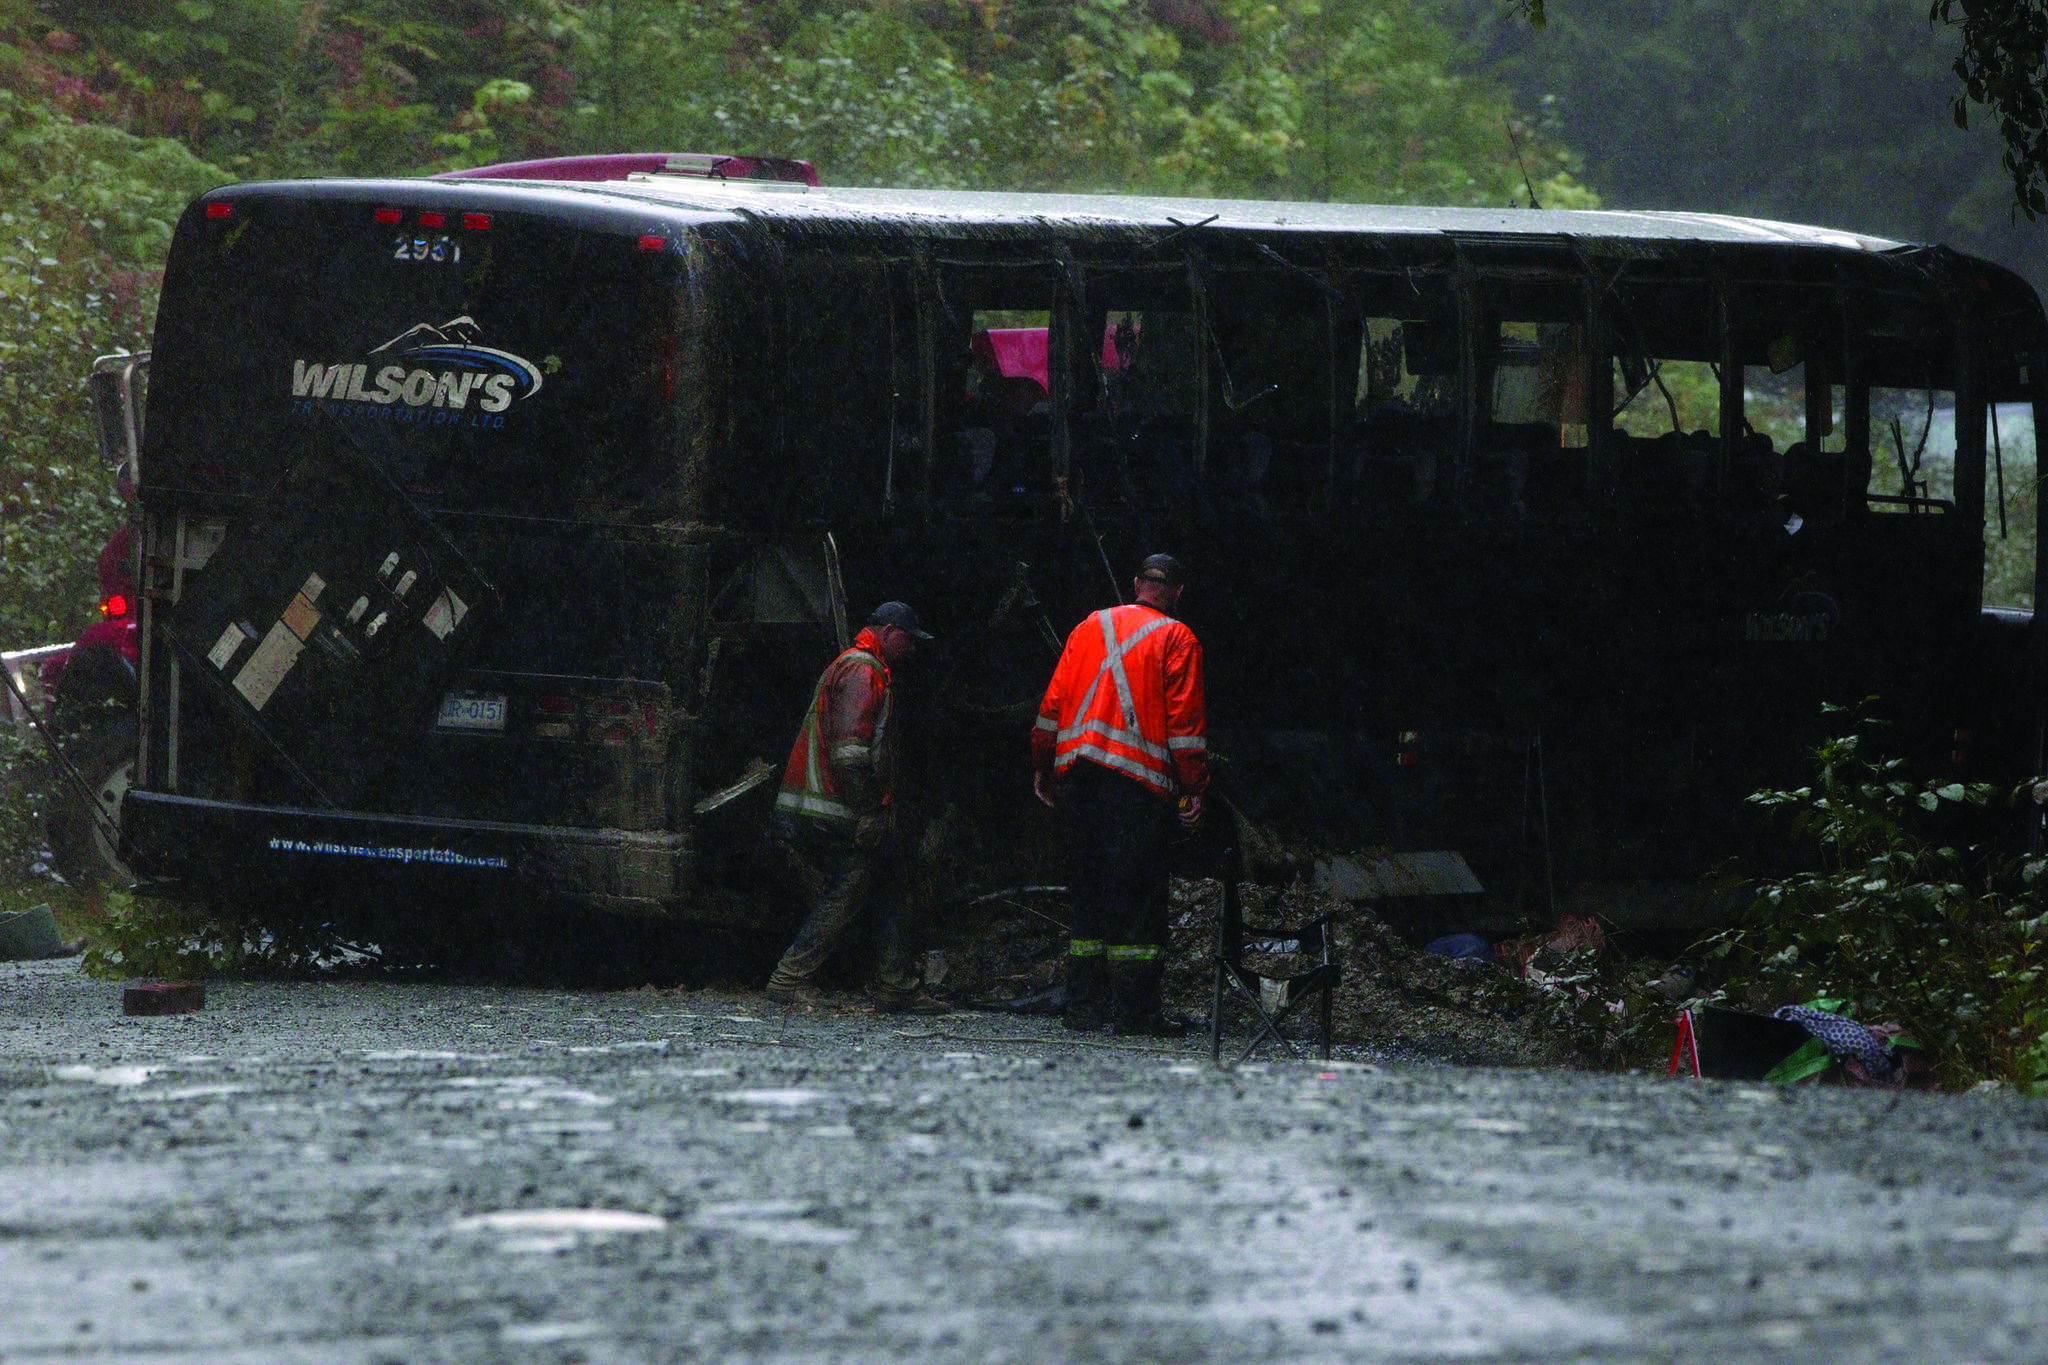 Search and rescue crews and RCMP help a tow-truck crew to remove a bus from the ditch of a logging road near Bamfield, B.C., on Saturday, September 14, 2019. Two University of Victoria students died and more than a dozen other people were injured after a bus on its way to a marine research centre rolled over on a narrow gravel road on Vancouver Island on Friday. The incident happened between the communities of Port Alberni and Bamfield, said the Joint Rescue Co-ordination Centre in Victoria, which received a call for assistance at around 10 p.m. THE CANADIAN PRESS/Chad Hipolito